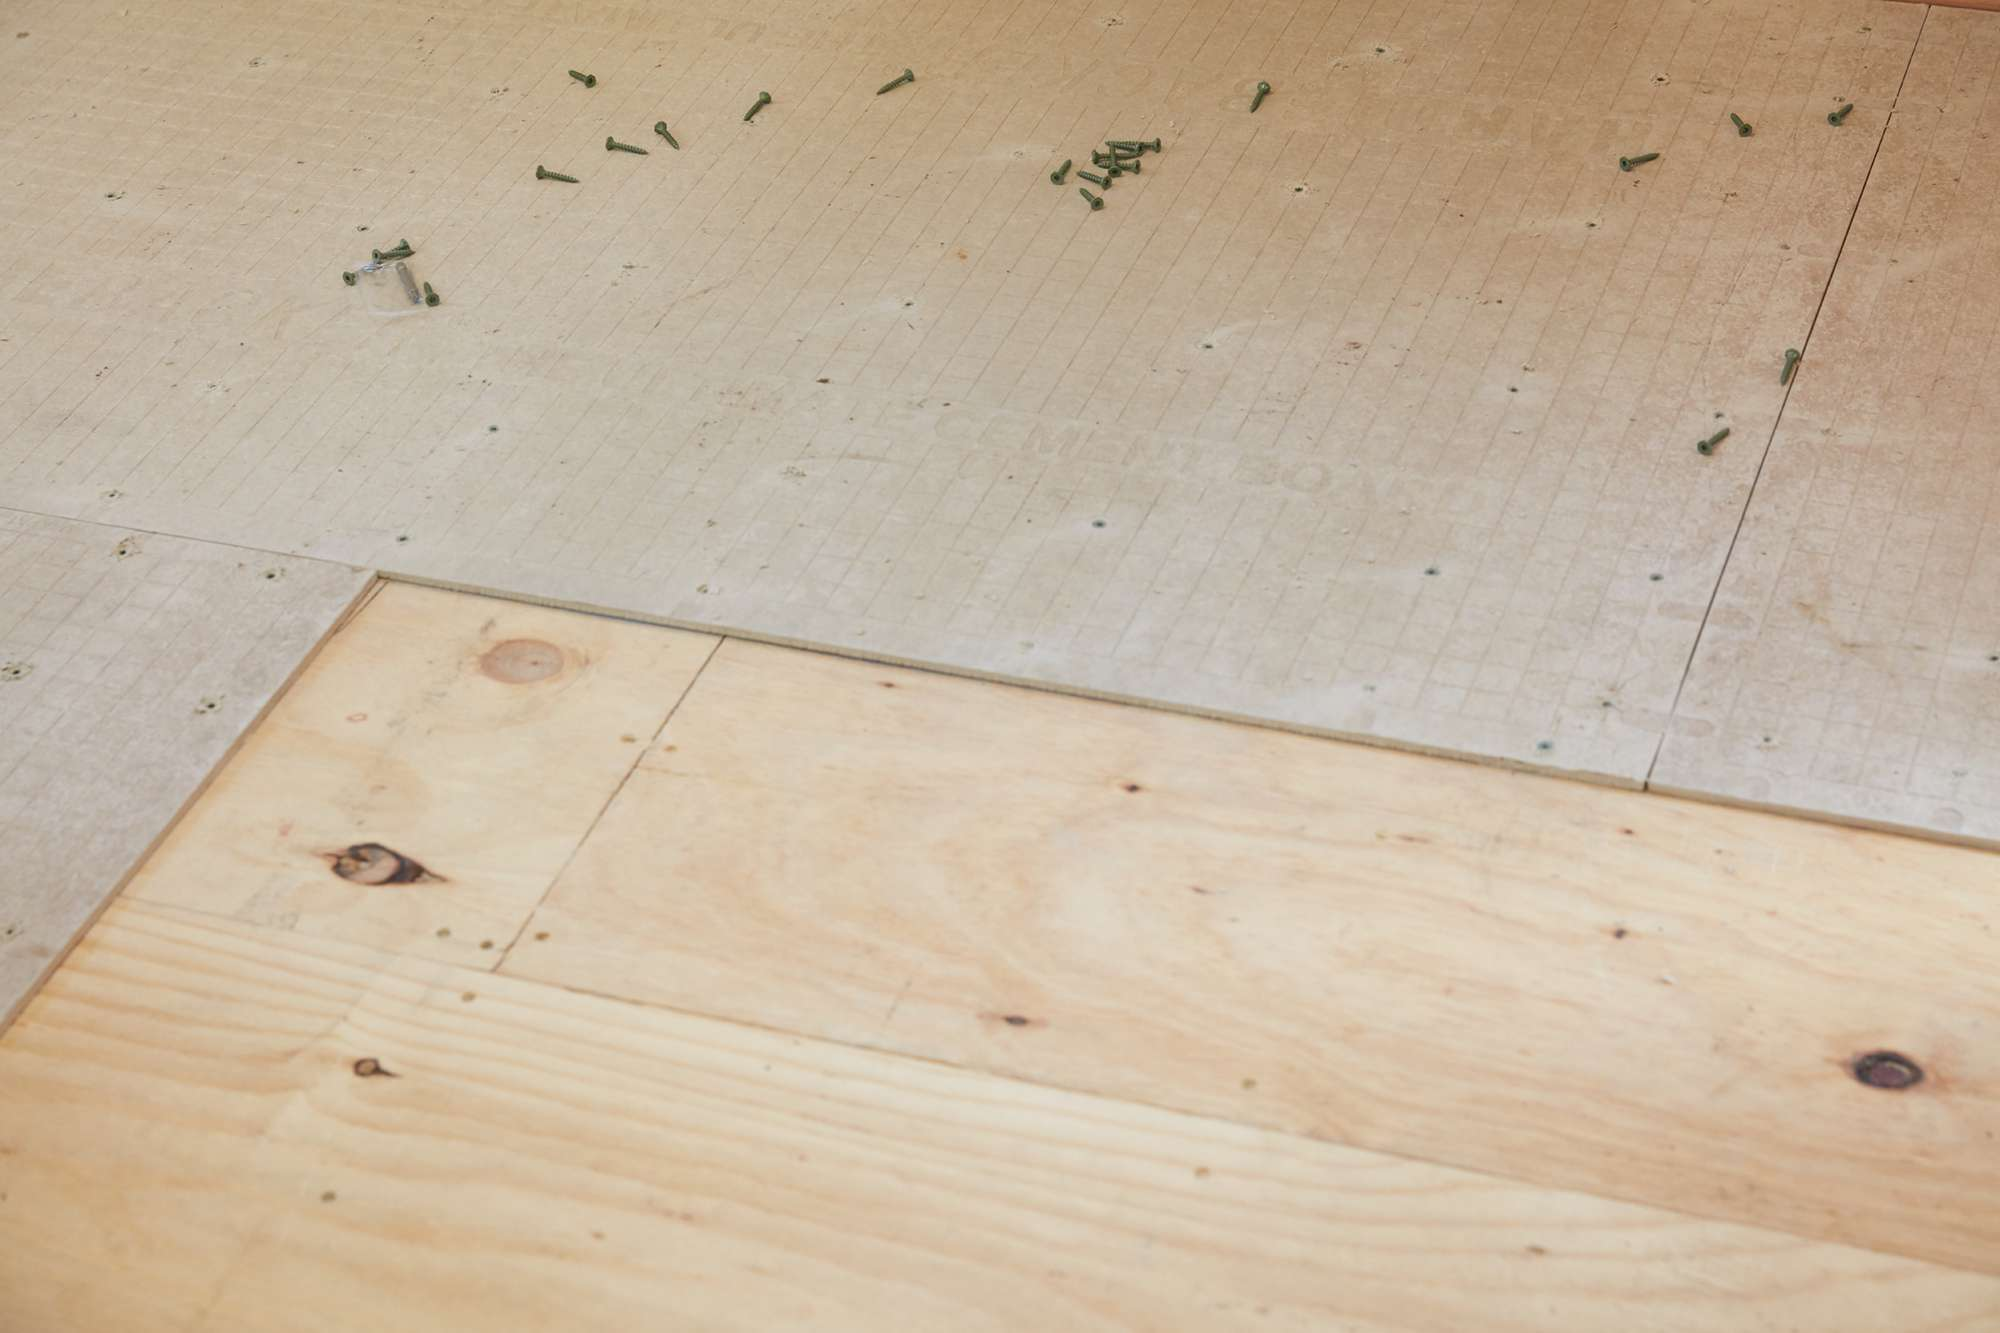 Underlayment of plywood